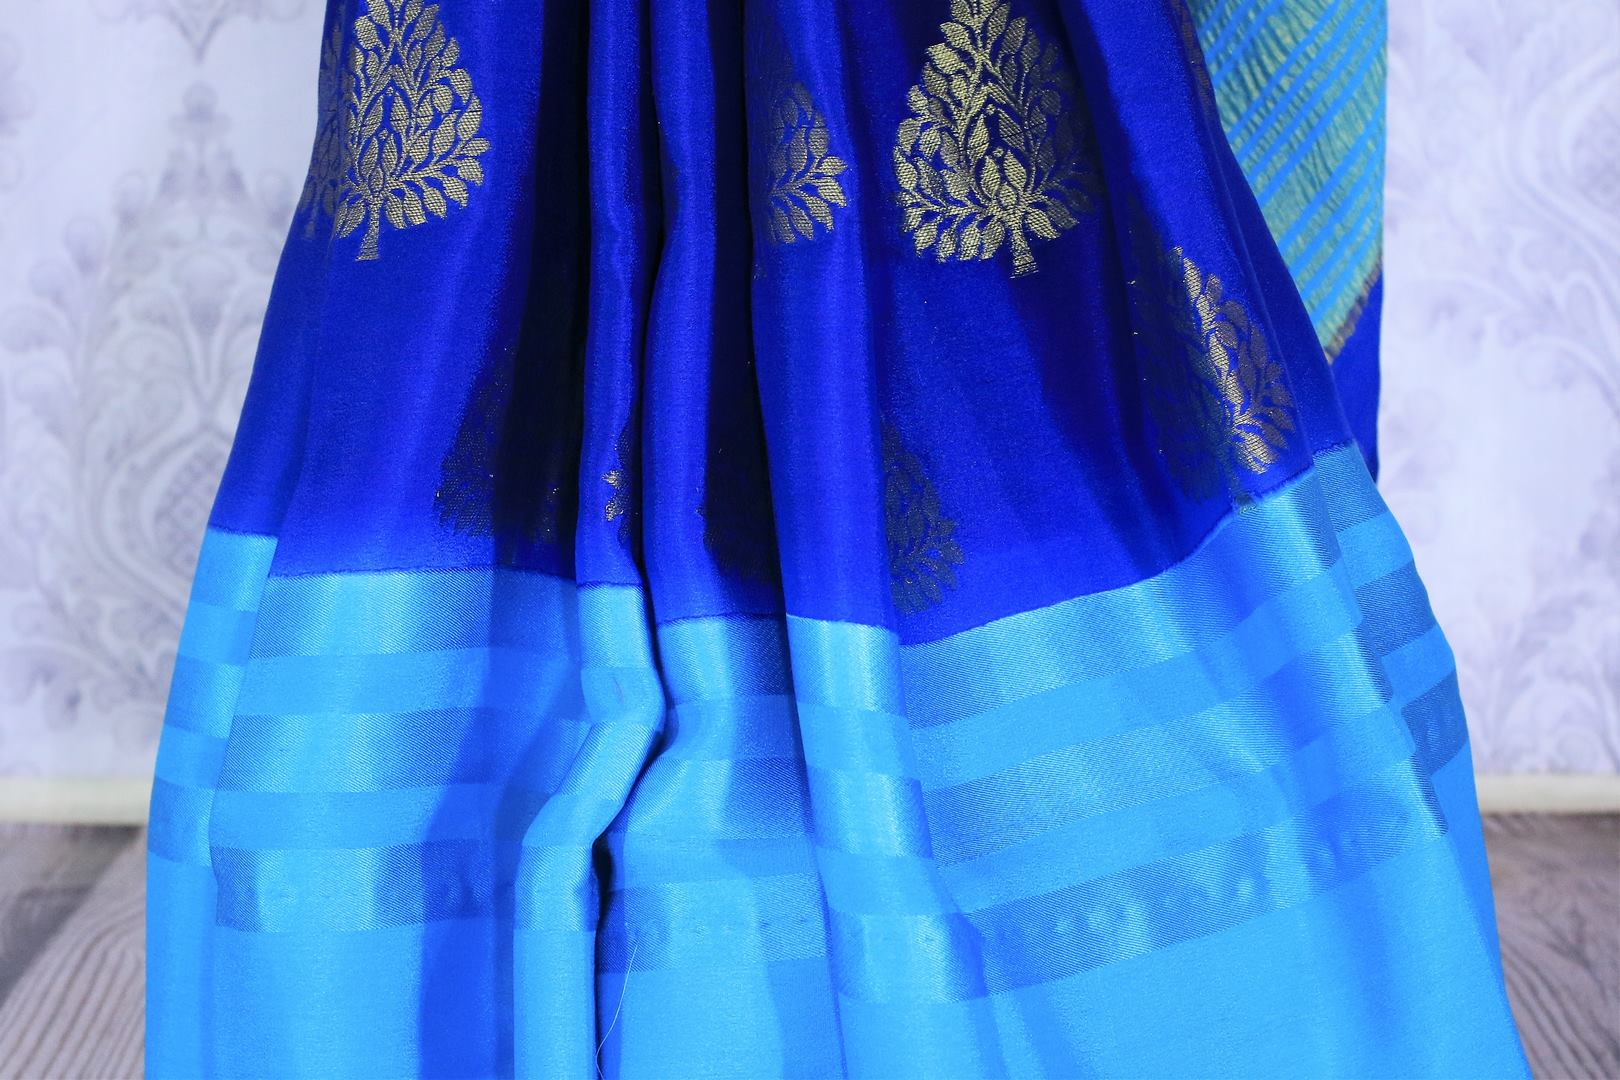 Feel the blues in this gorgeous half-half designer crepe silk blue colored sari. The stunning gold embroidered saree works well for both formal events and family gatherings. Style it with a light blue printed blouse to turn heads. Shop designer embroidered saris, silk saris online or visit Pure Elegance store in USA. -pleats